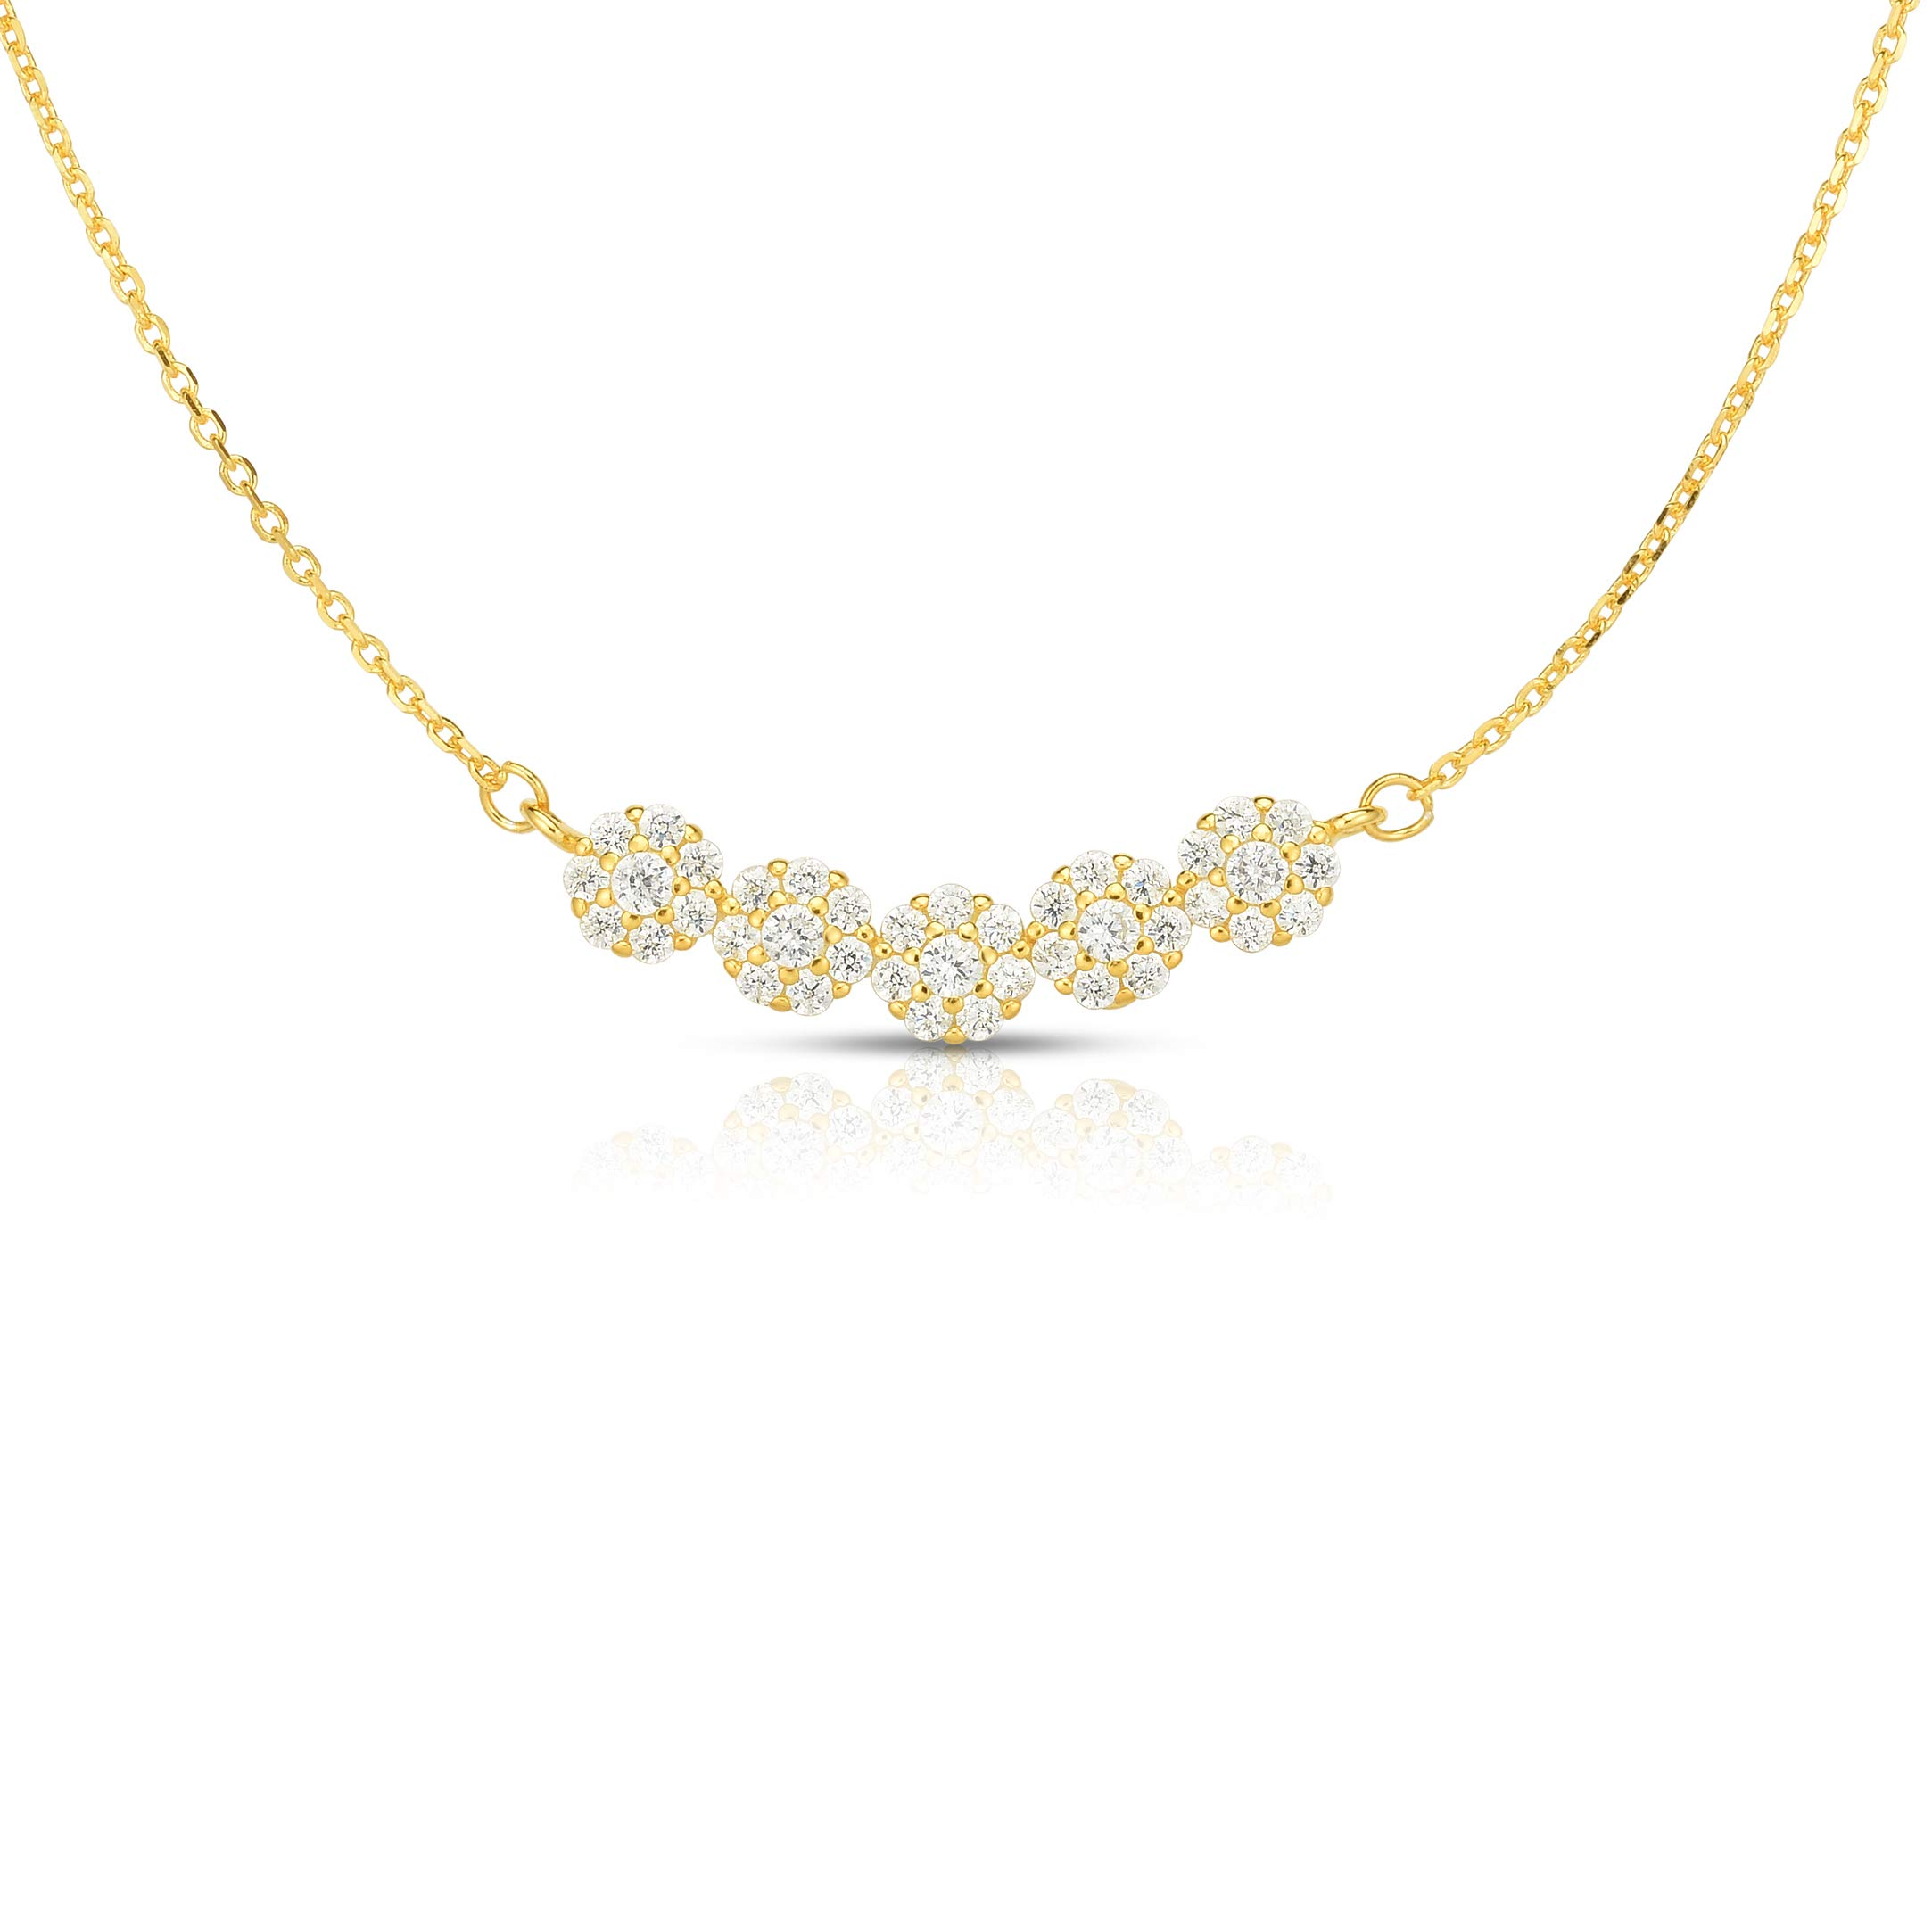 Unique Royal Jewelry 925 Sterling Silver 5 Flower Clusters Cubic Zirconia Adjustable Length Necklace 16'',17'' 18''. (14K Yellow Gold Plated)